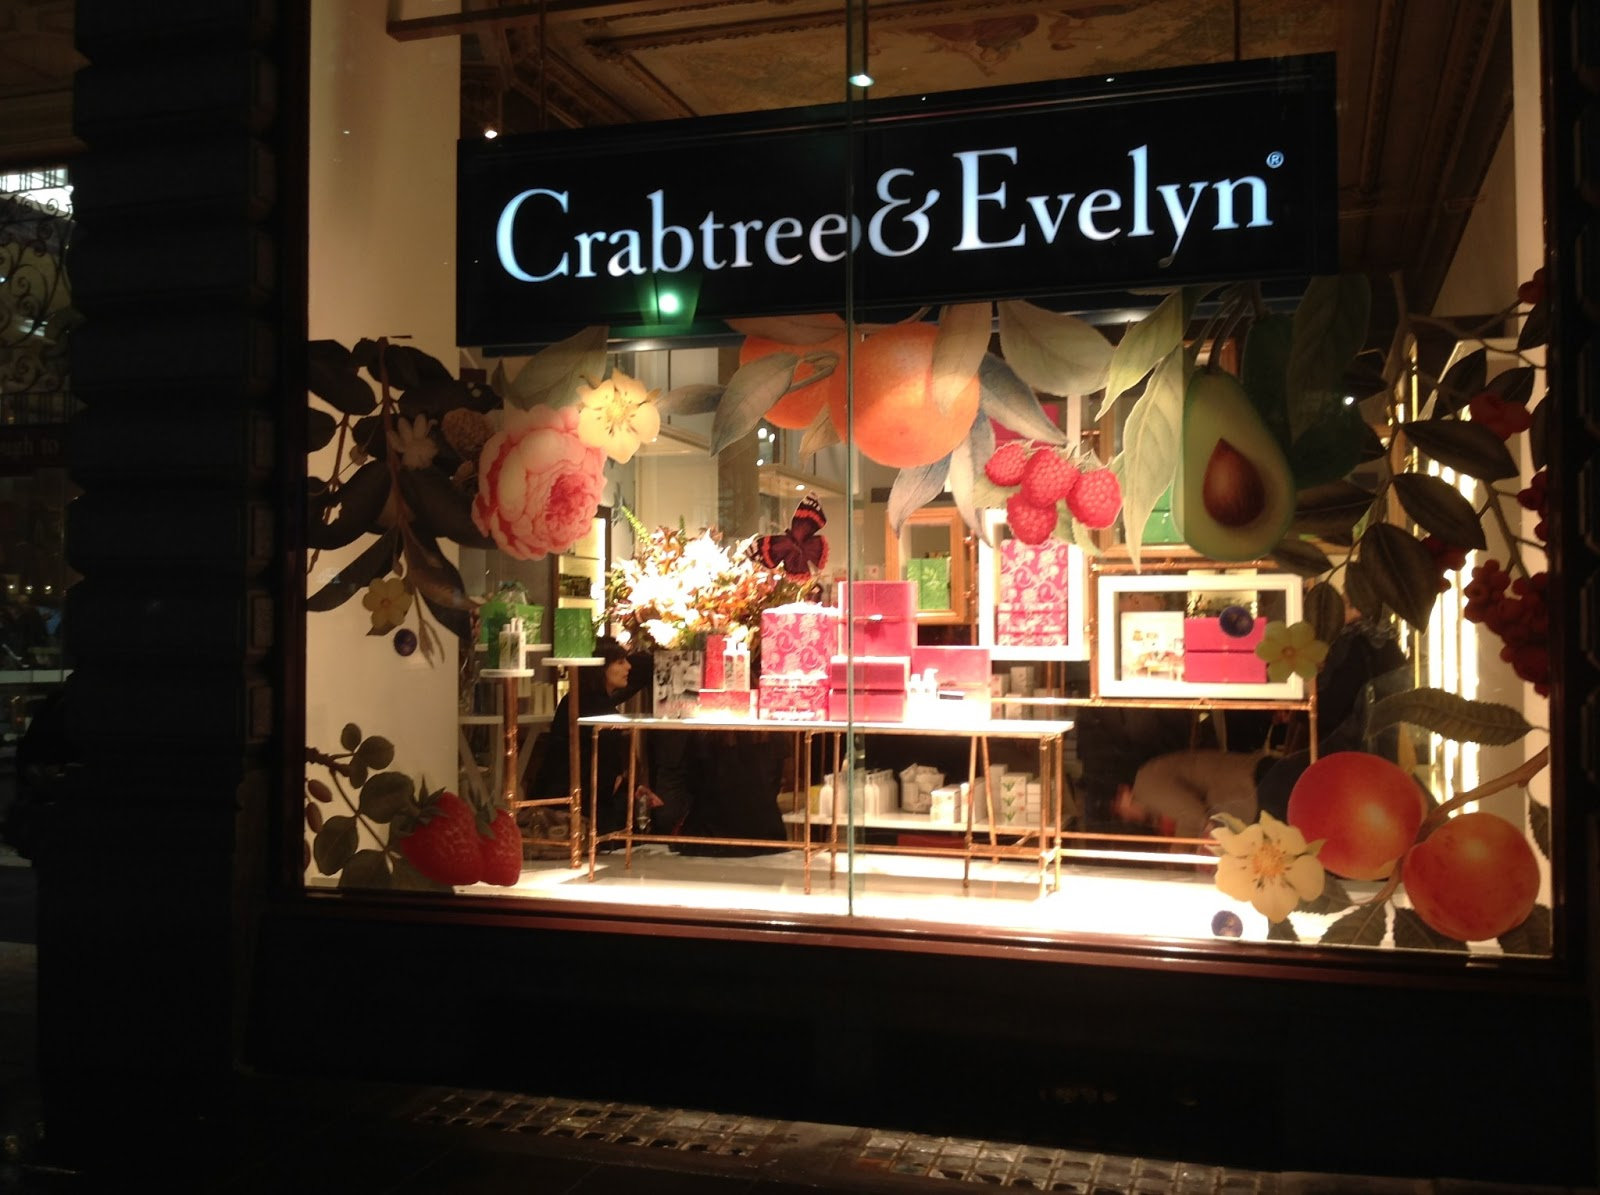 event crabtree evelyn opening of new flagship store the block arcade melbourne the beauty. Black Bedroom Furniture Sets. Home Design Ideas